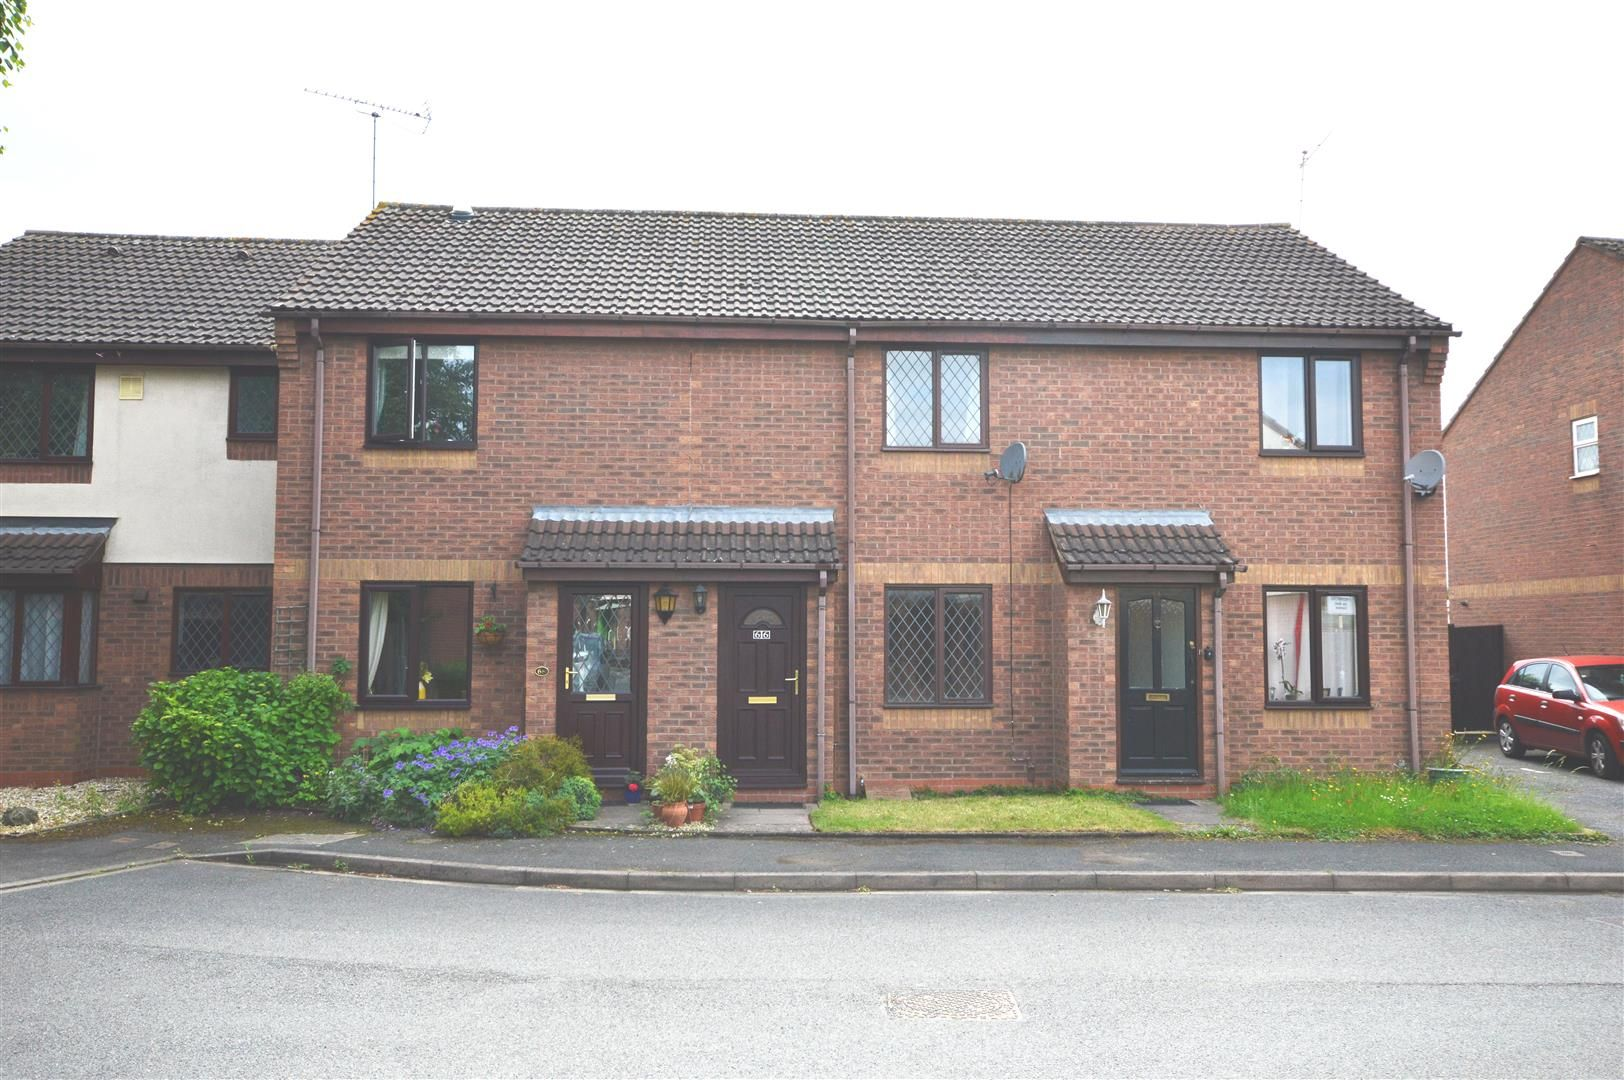 2 bed terraced to rent  - Property Image 1